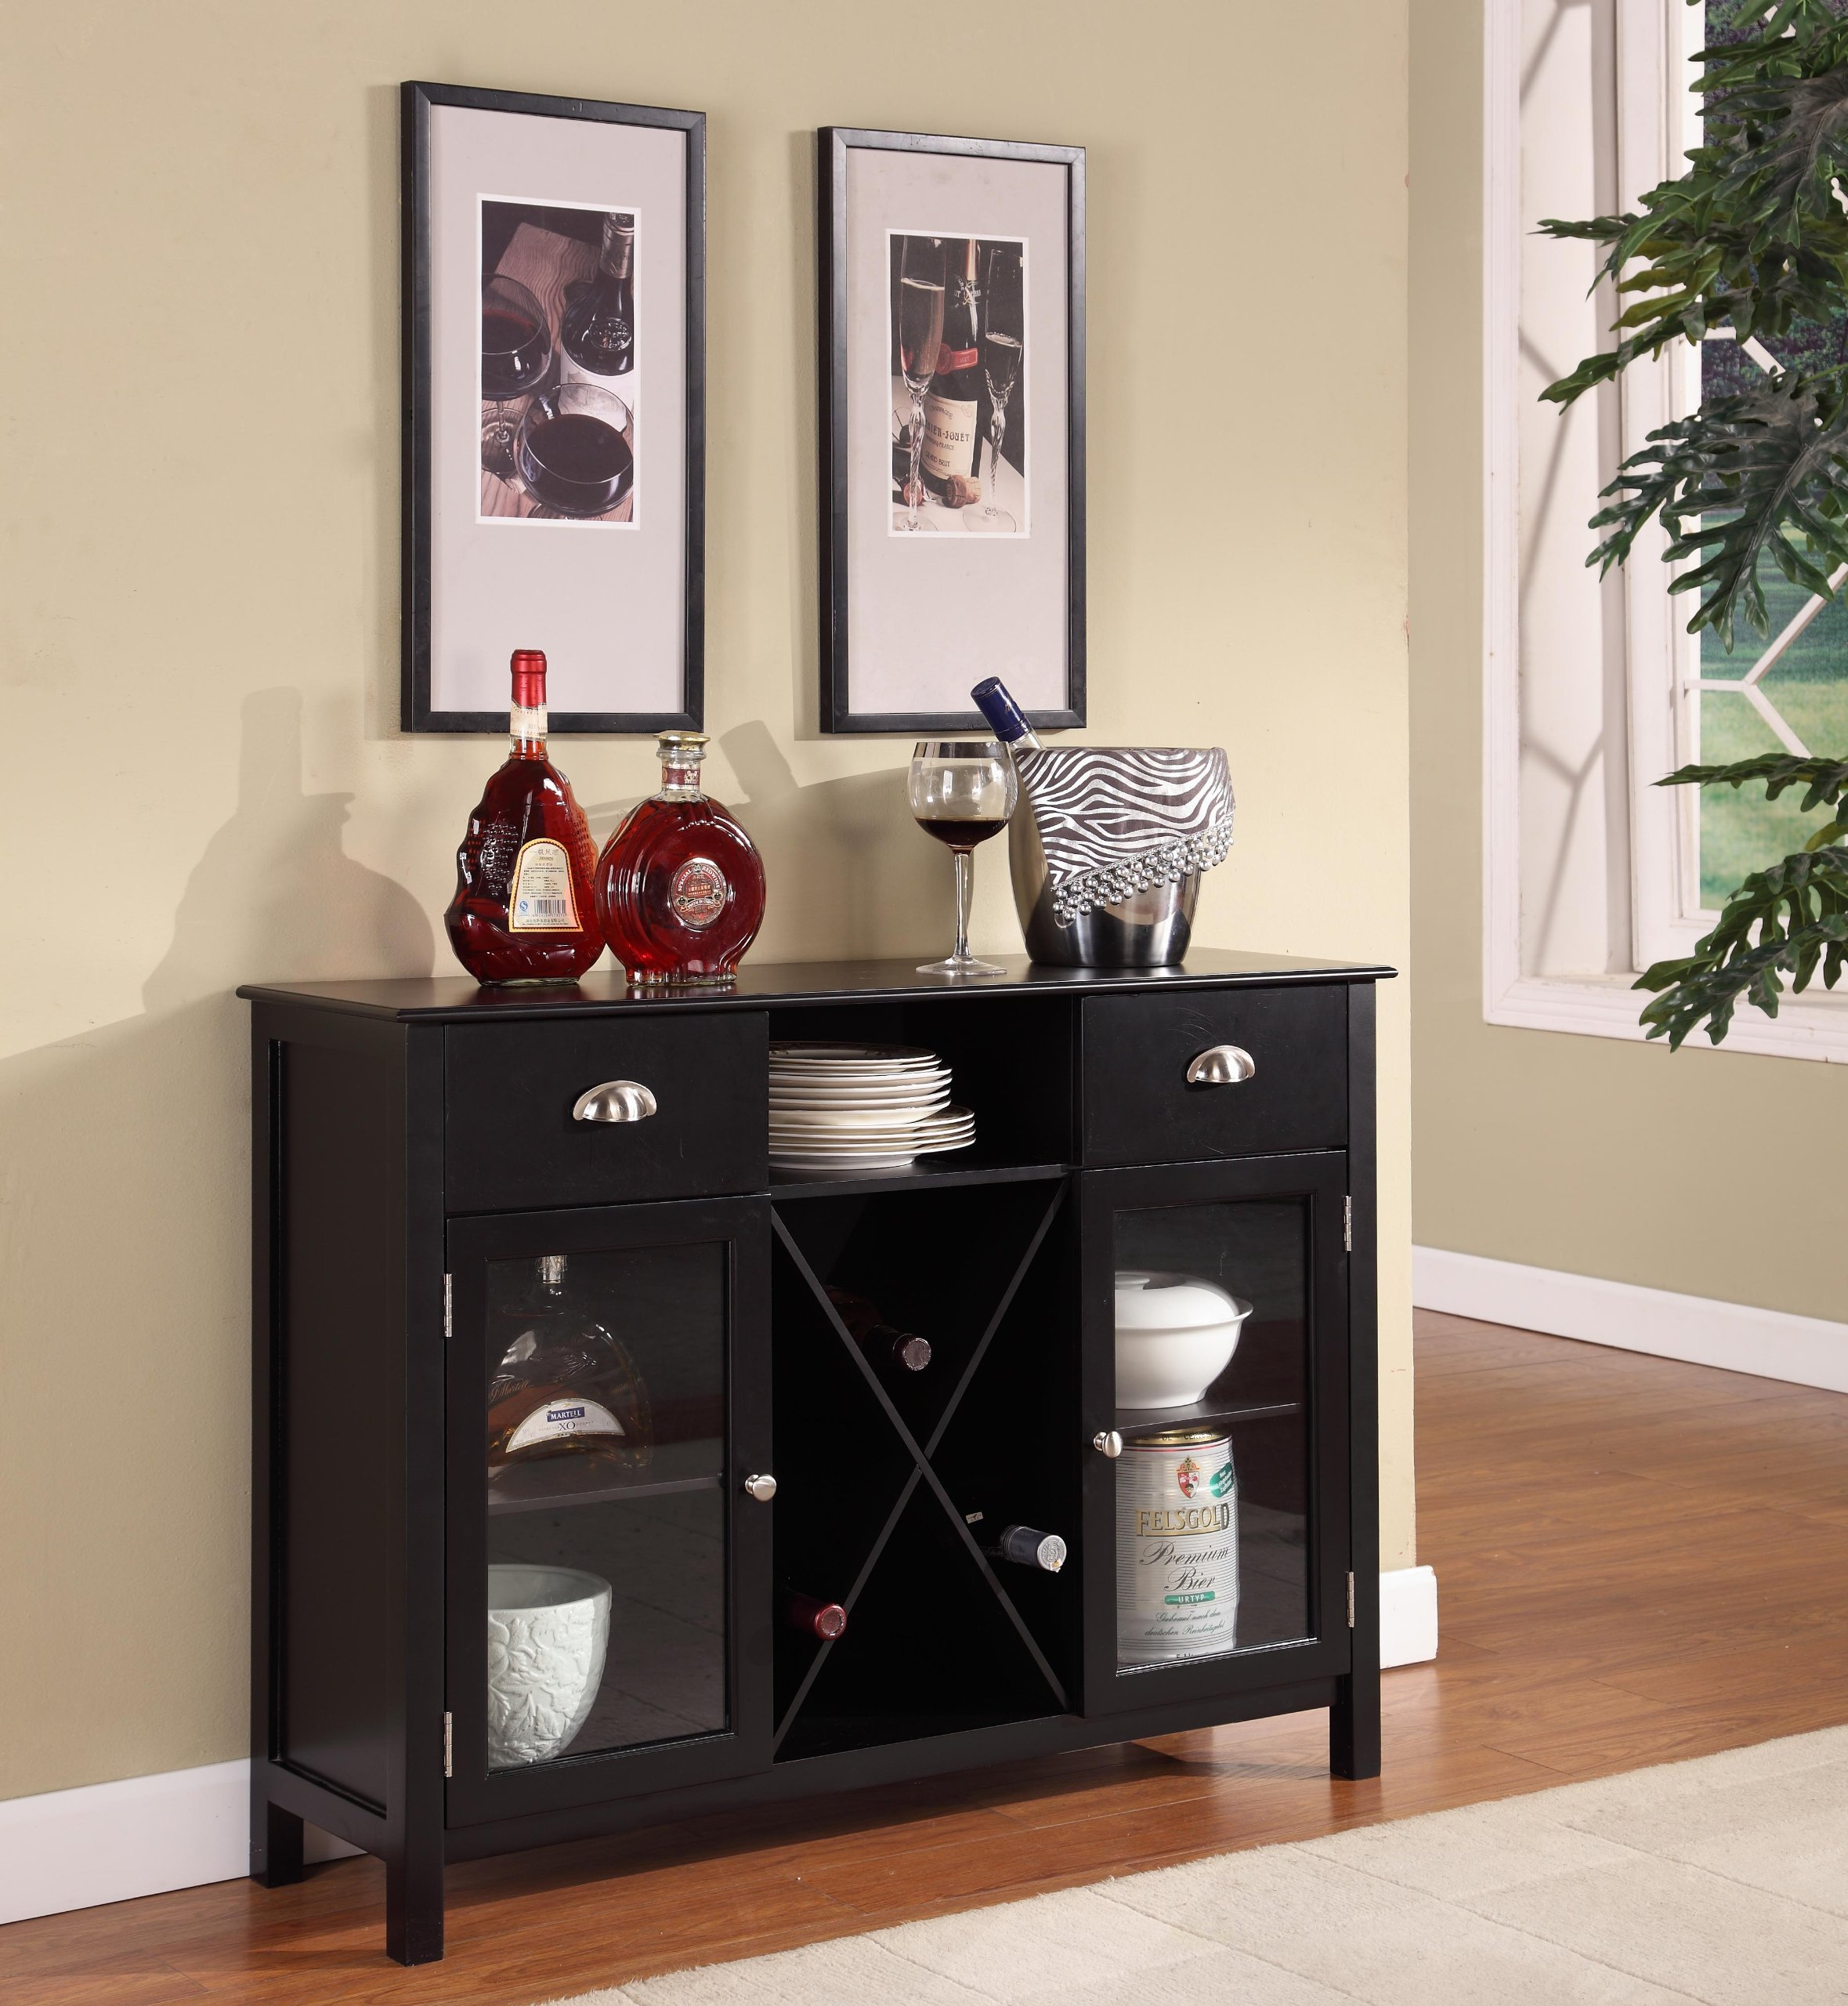 King's Brand Wood Wine Rack Console Sideboard Table with Drawers and Storage, Black Finish by King's Brand